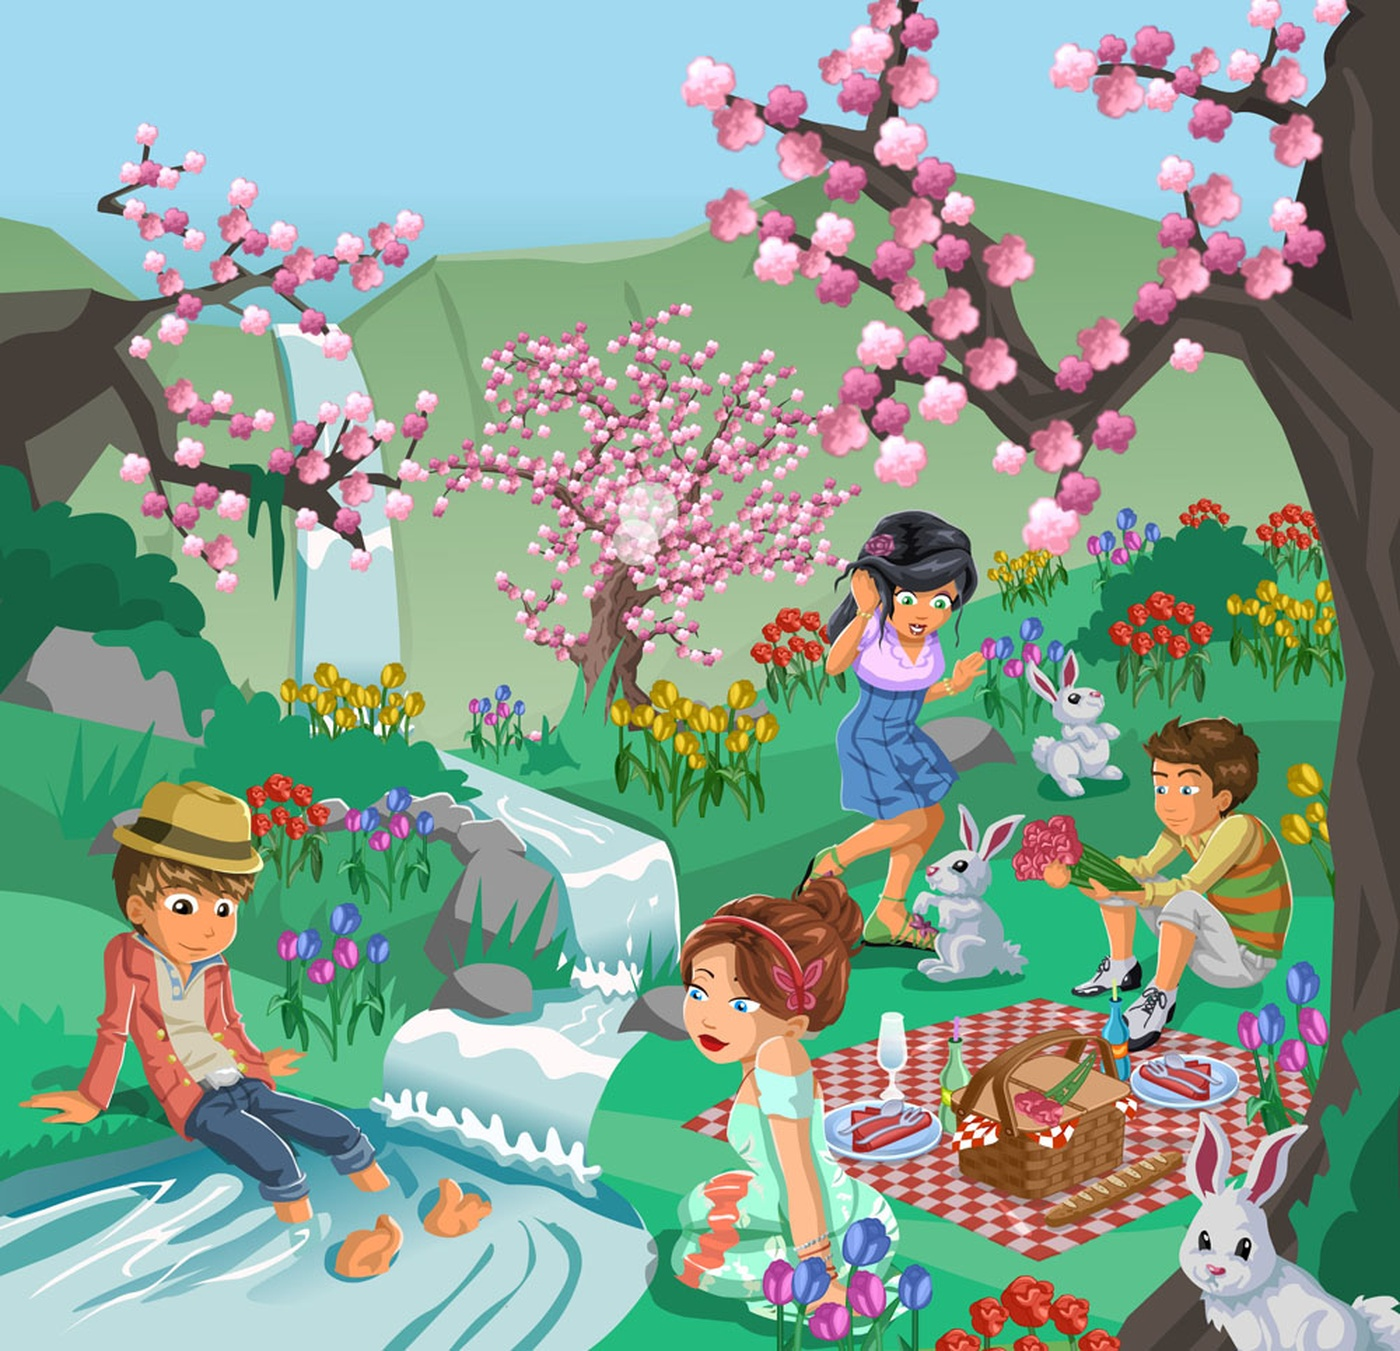 Simon LaBadie Chartrand - Vectorial Spring Time Illustration Friends Picnic